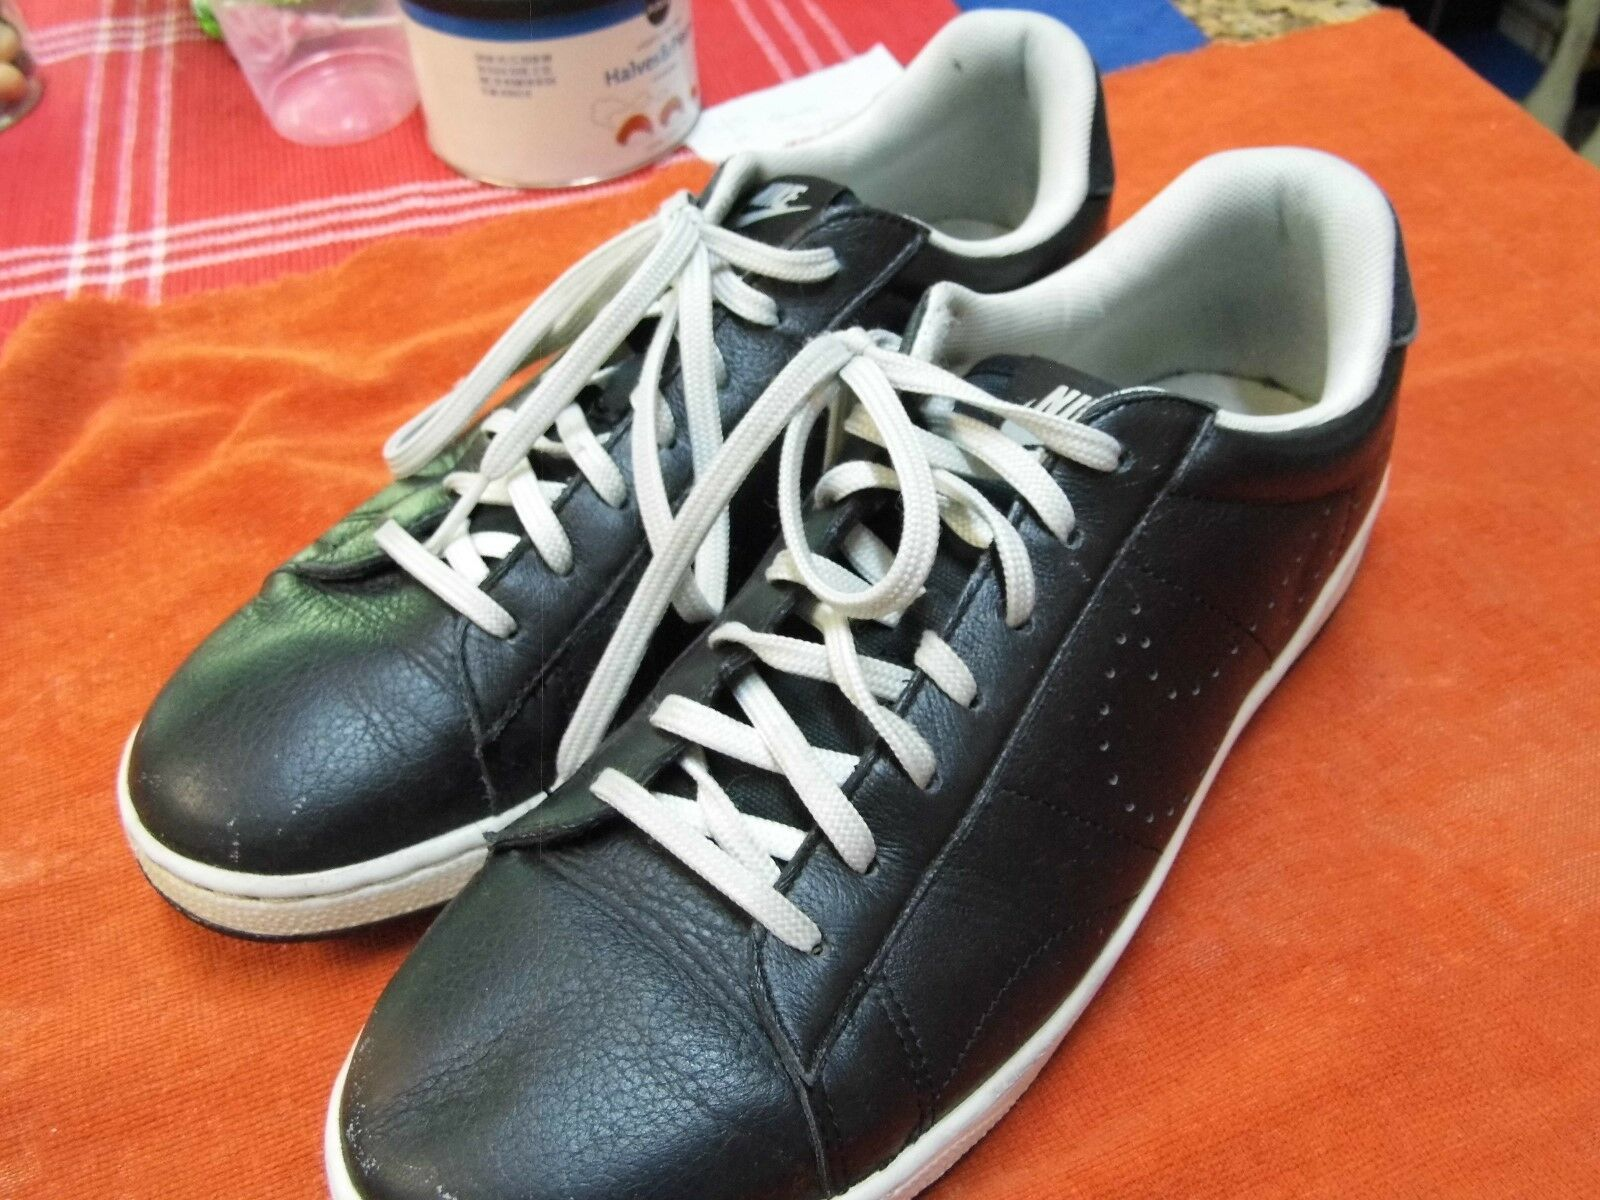 Men's Nike Athletic Shoes Comfortable  Wild casual shoes